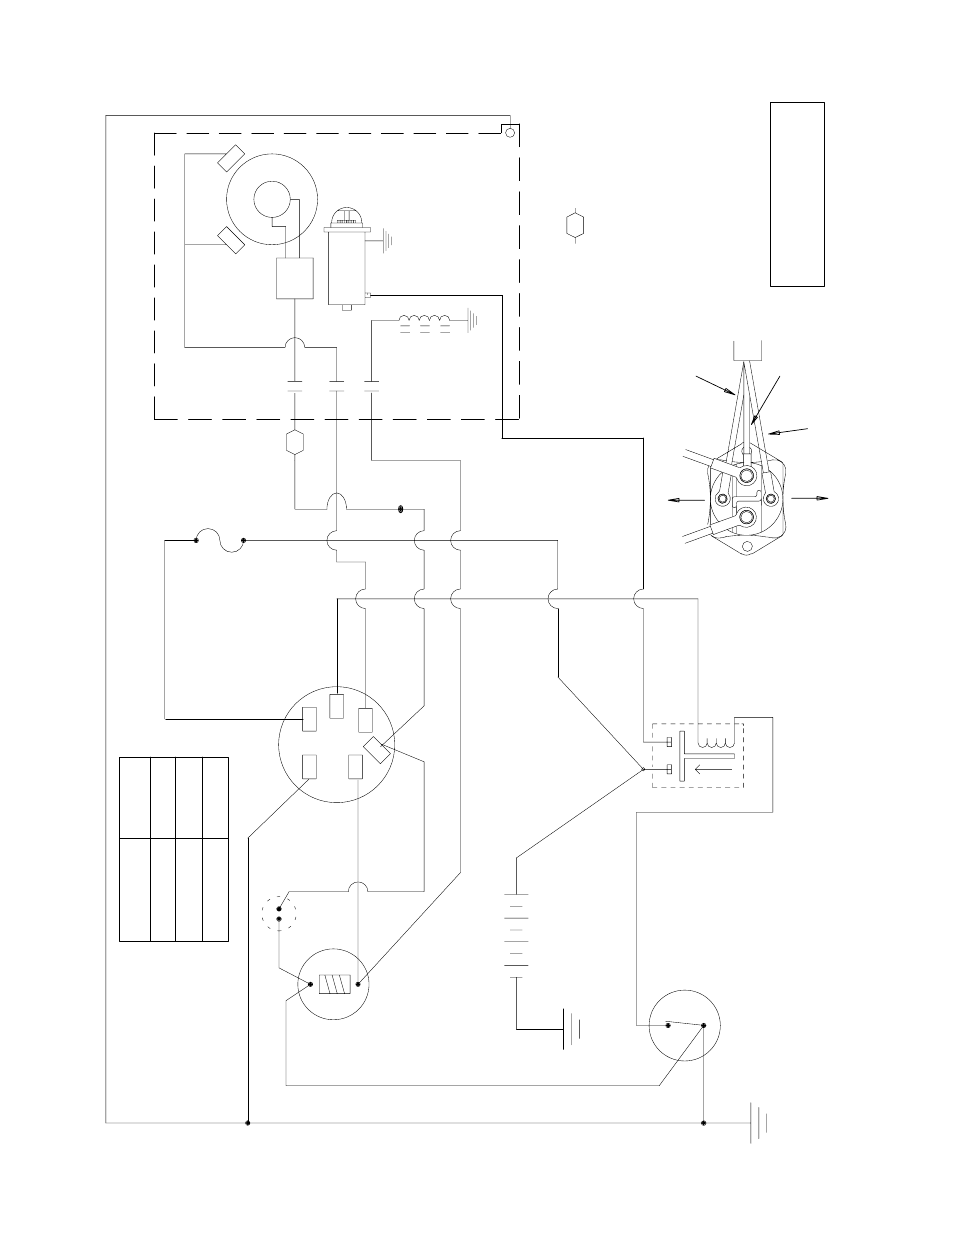 schematics and diagrams electrical schematics and diagrams rh manualsdir com Lawn Mower Wiring Schematics Toro Mower Wiring Diagram